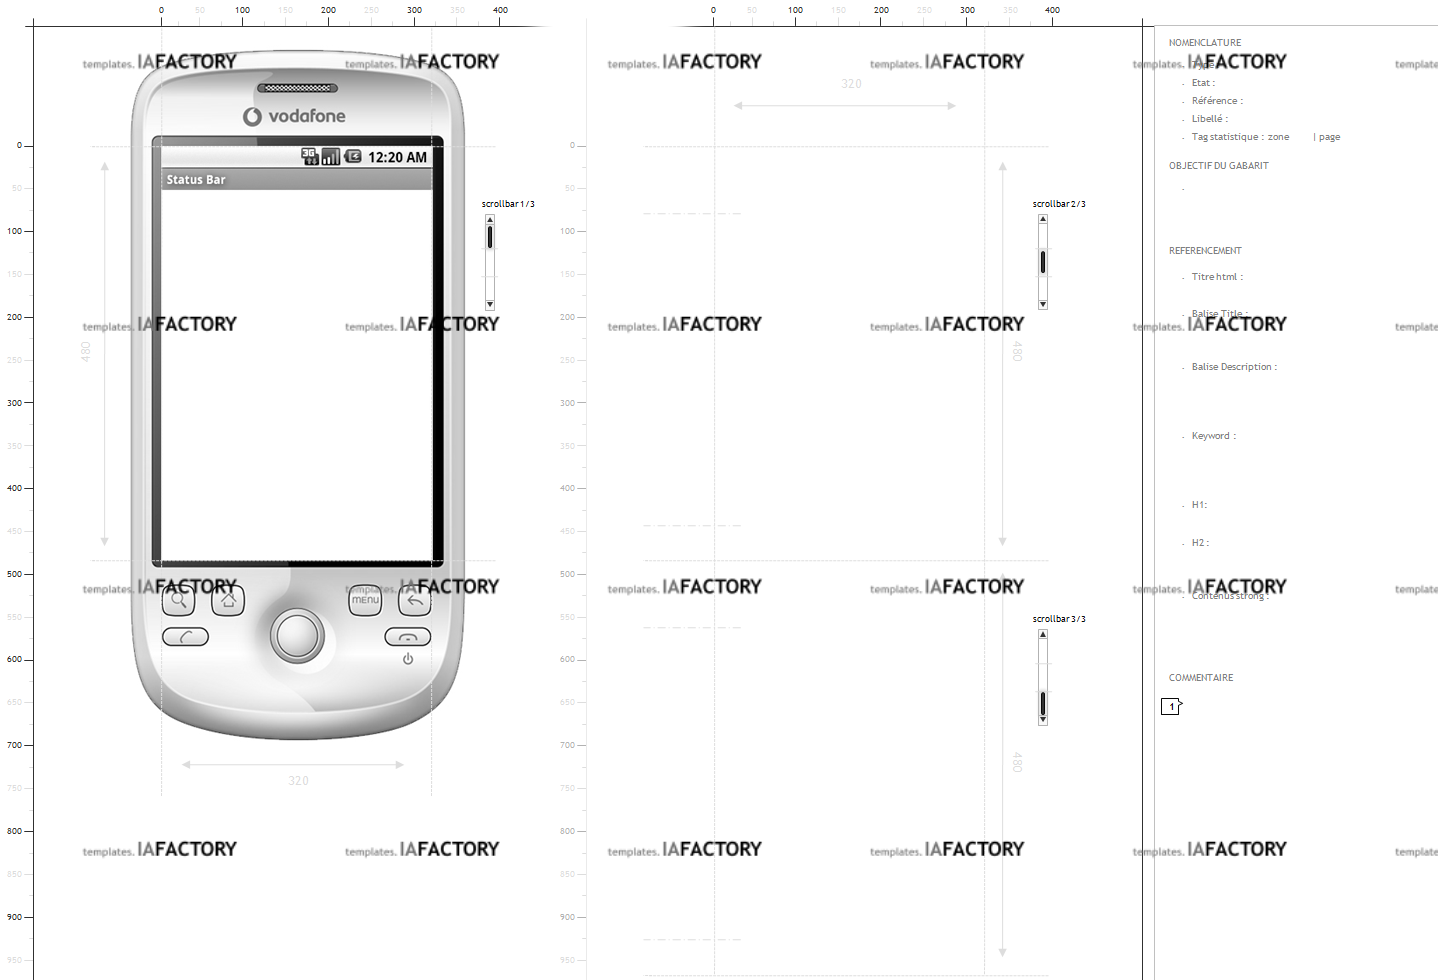 storyboard - smartphone (http://templates.iafactory.fr) fichier .ppt